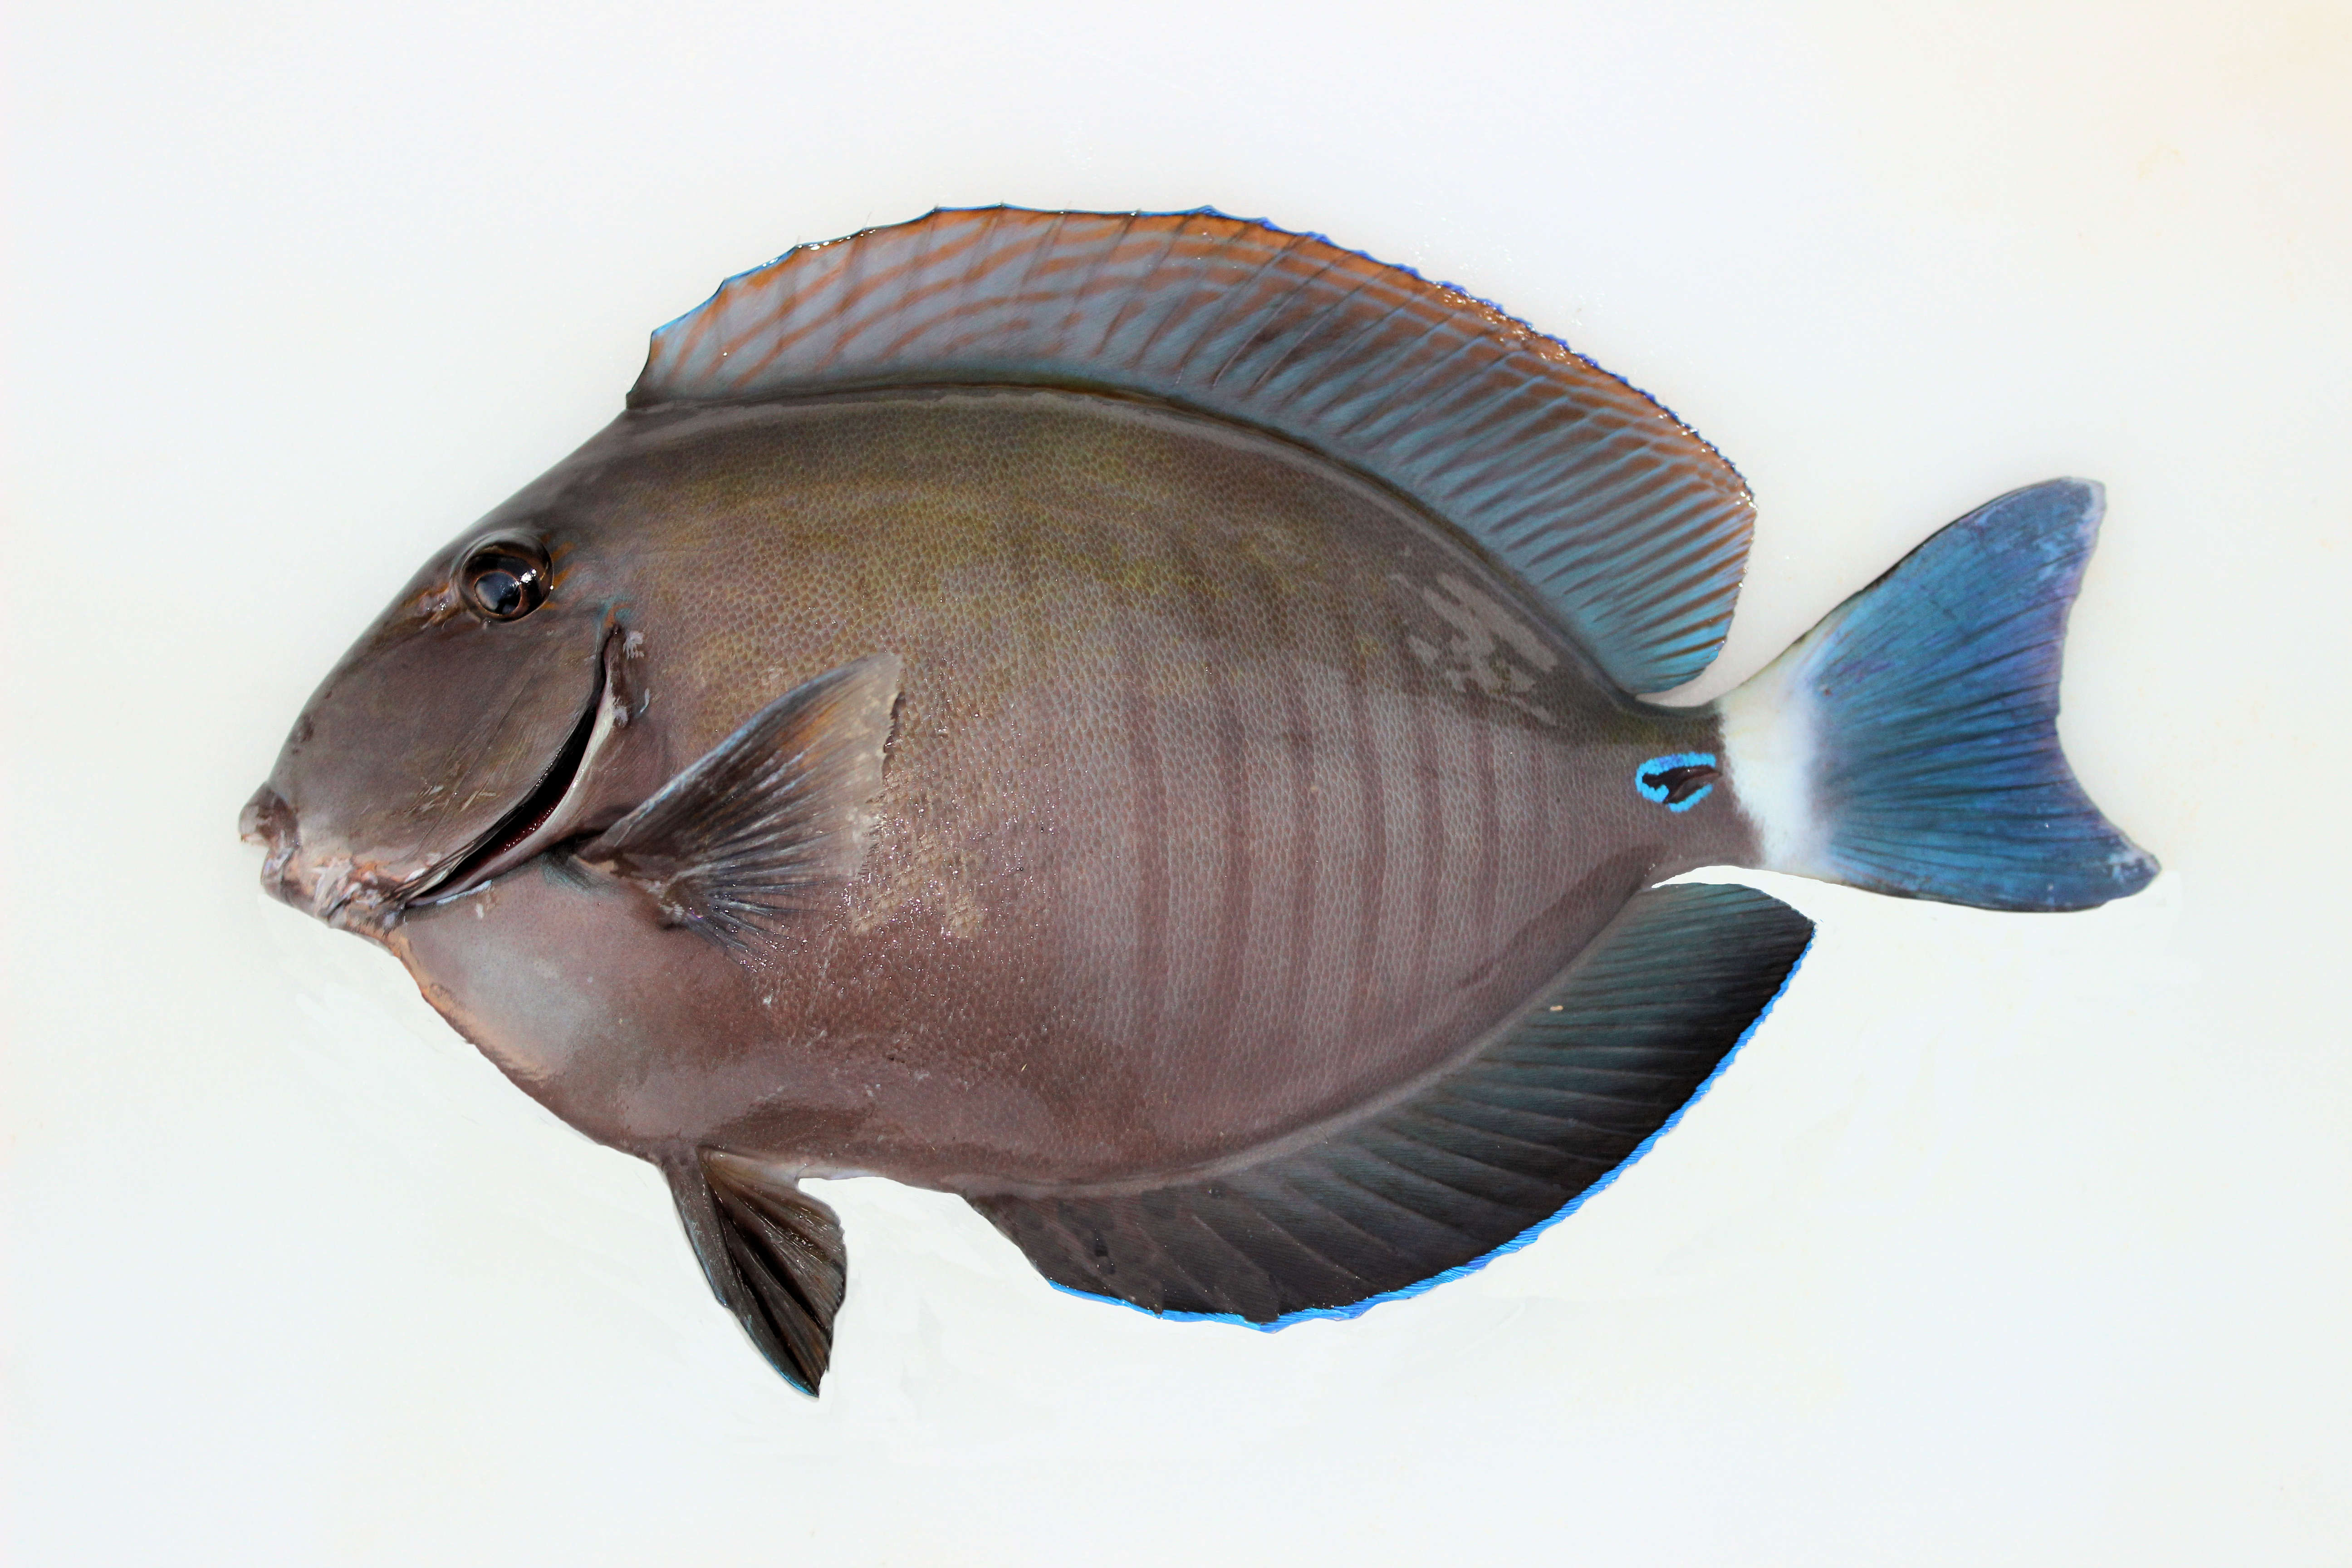 Doctorfish mexico fish marine life birds and for Fish in mexico